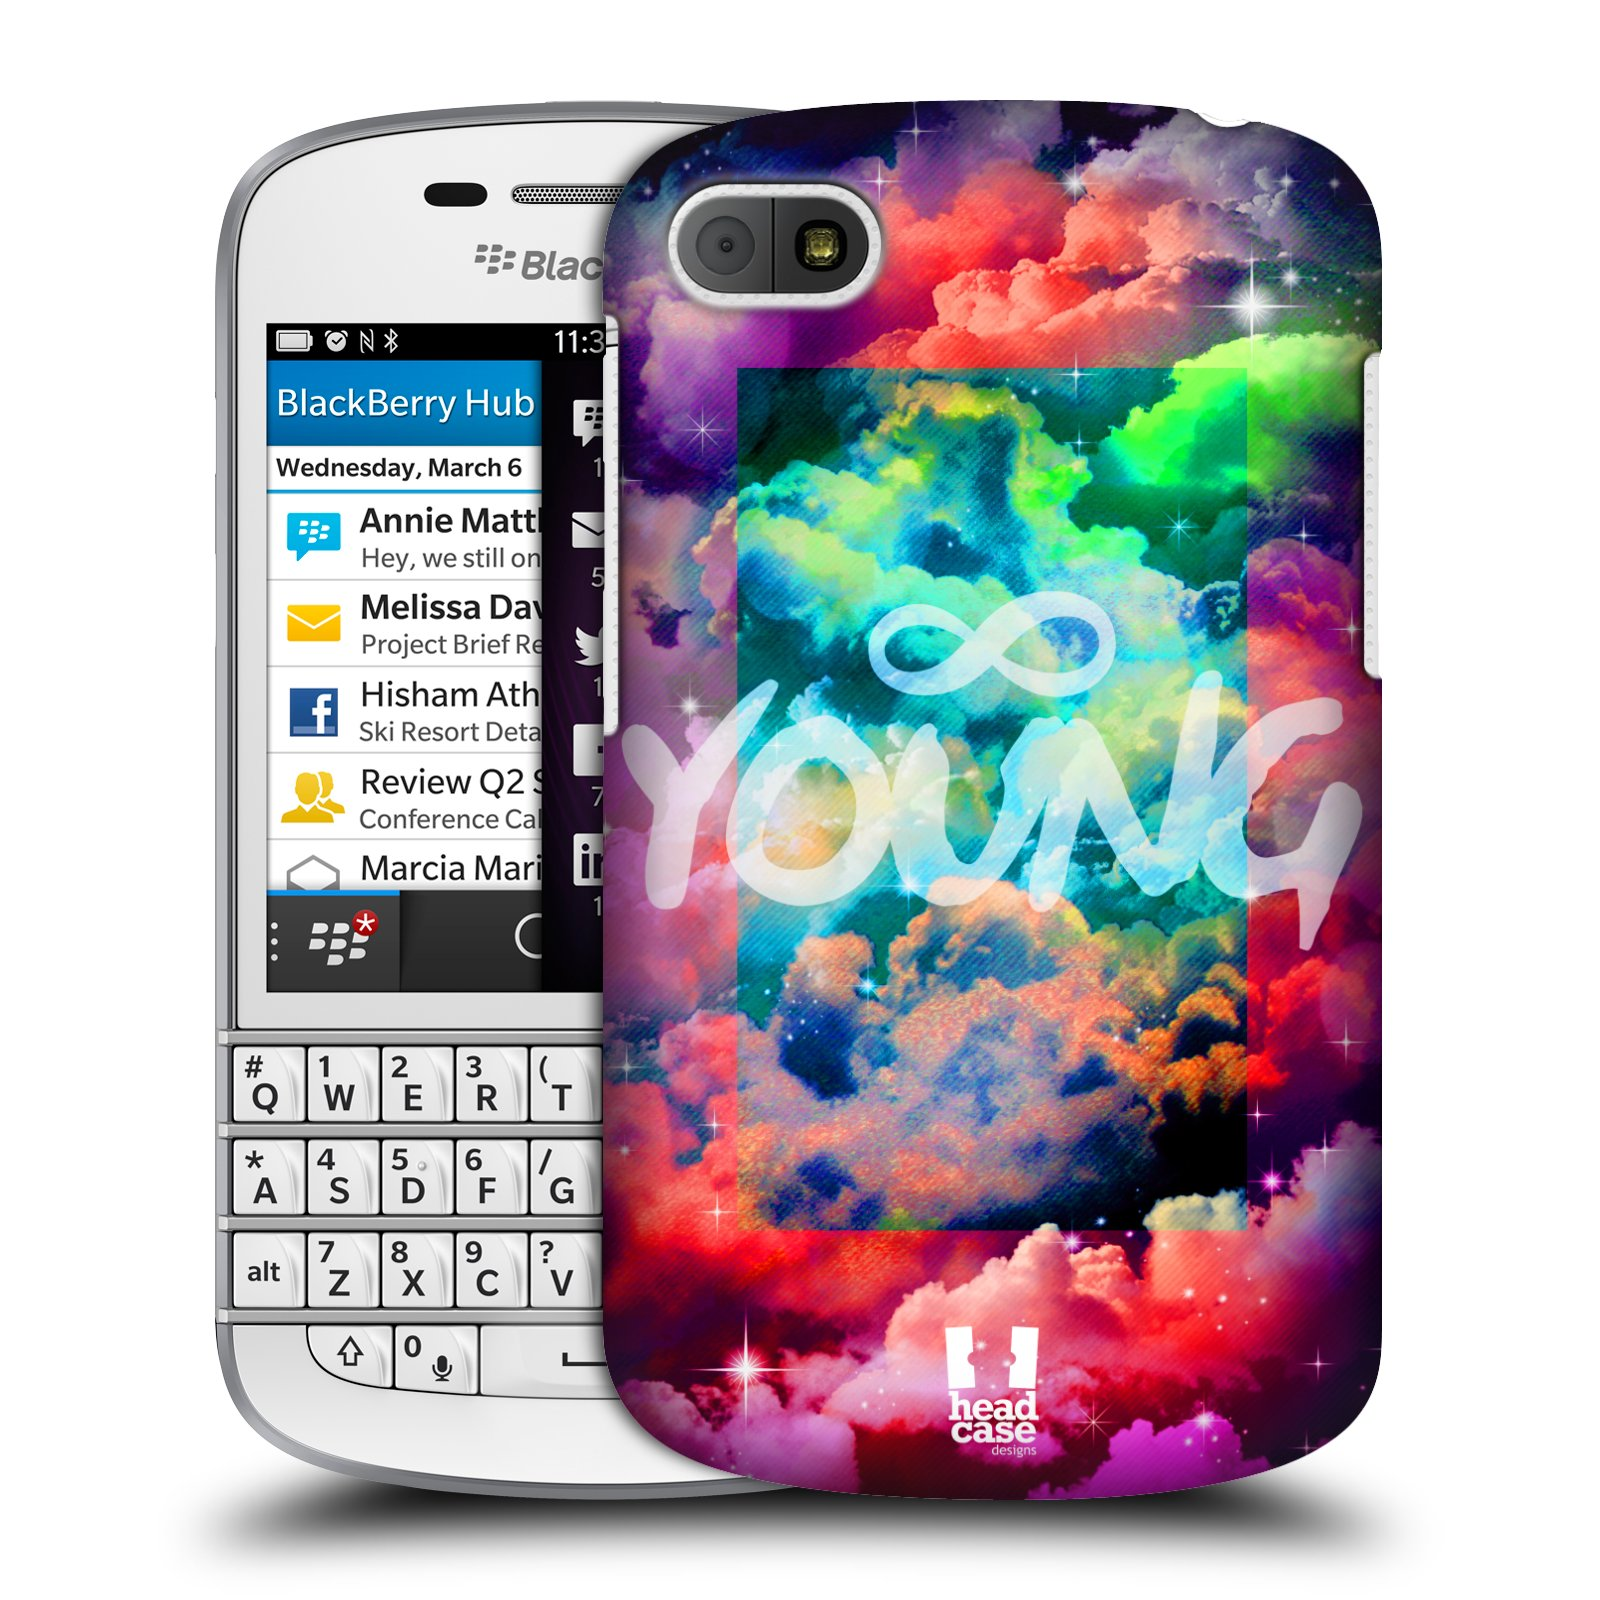 HEAD CASE CHROMATIC CLOUDS SNAP-ON BACK COVER FOR BLACKBERRY Q10